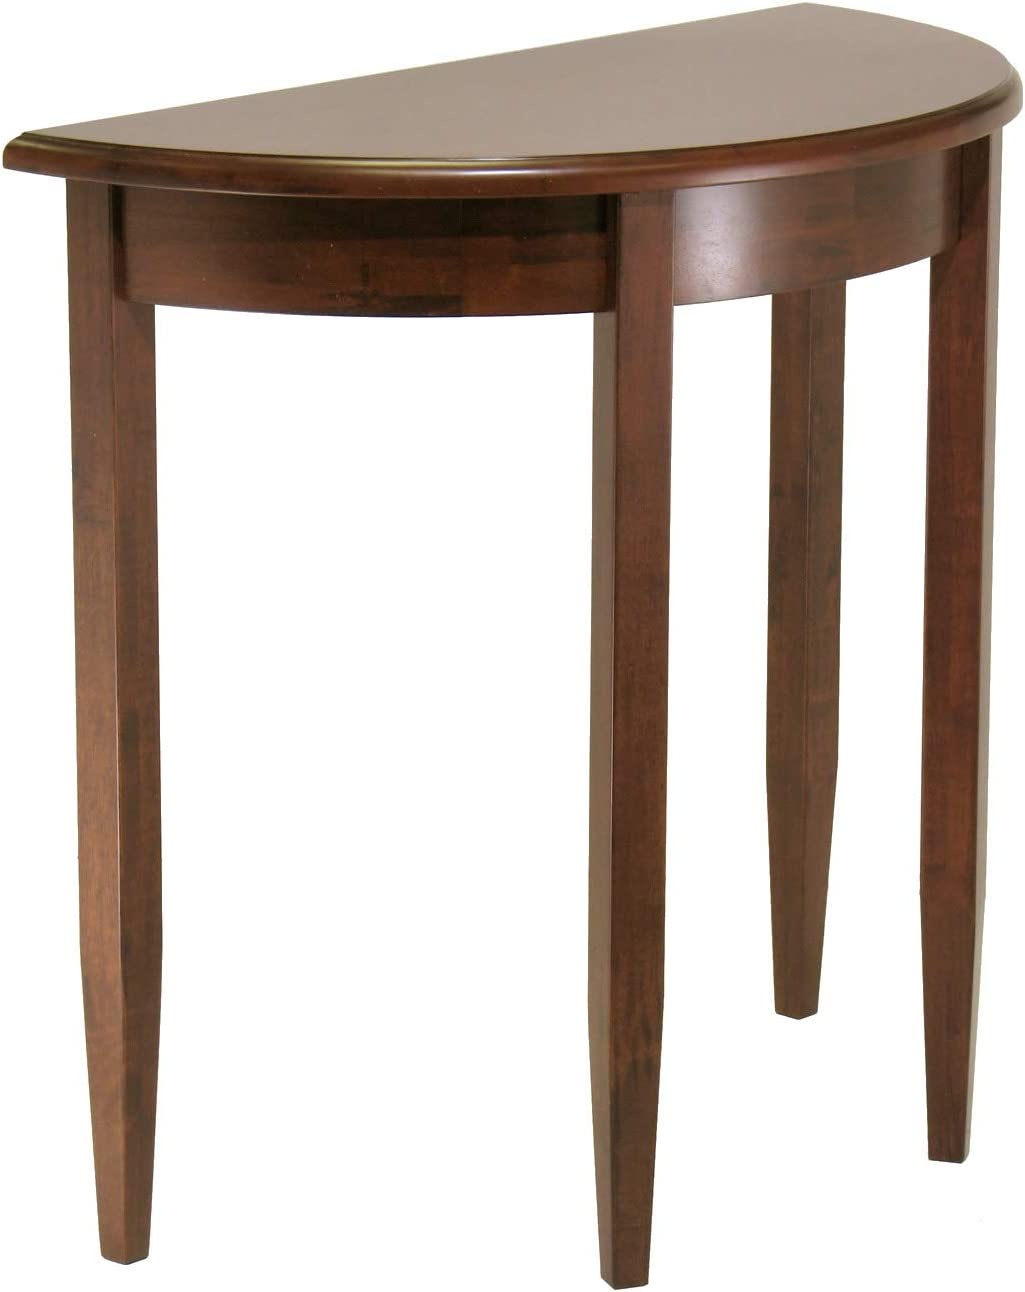 Winsome Concord Occasional Table, Walnut